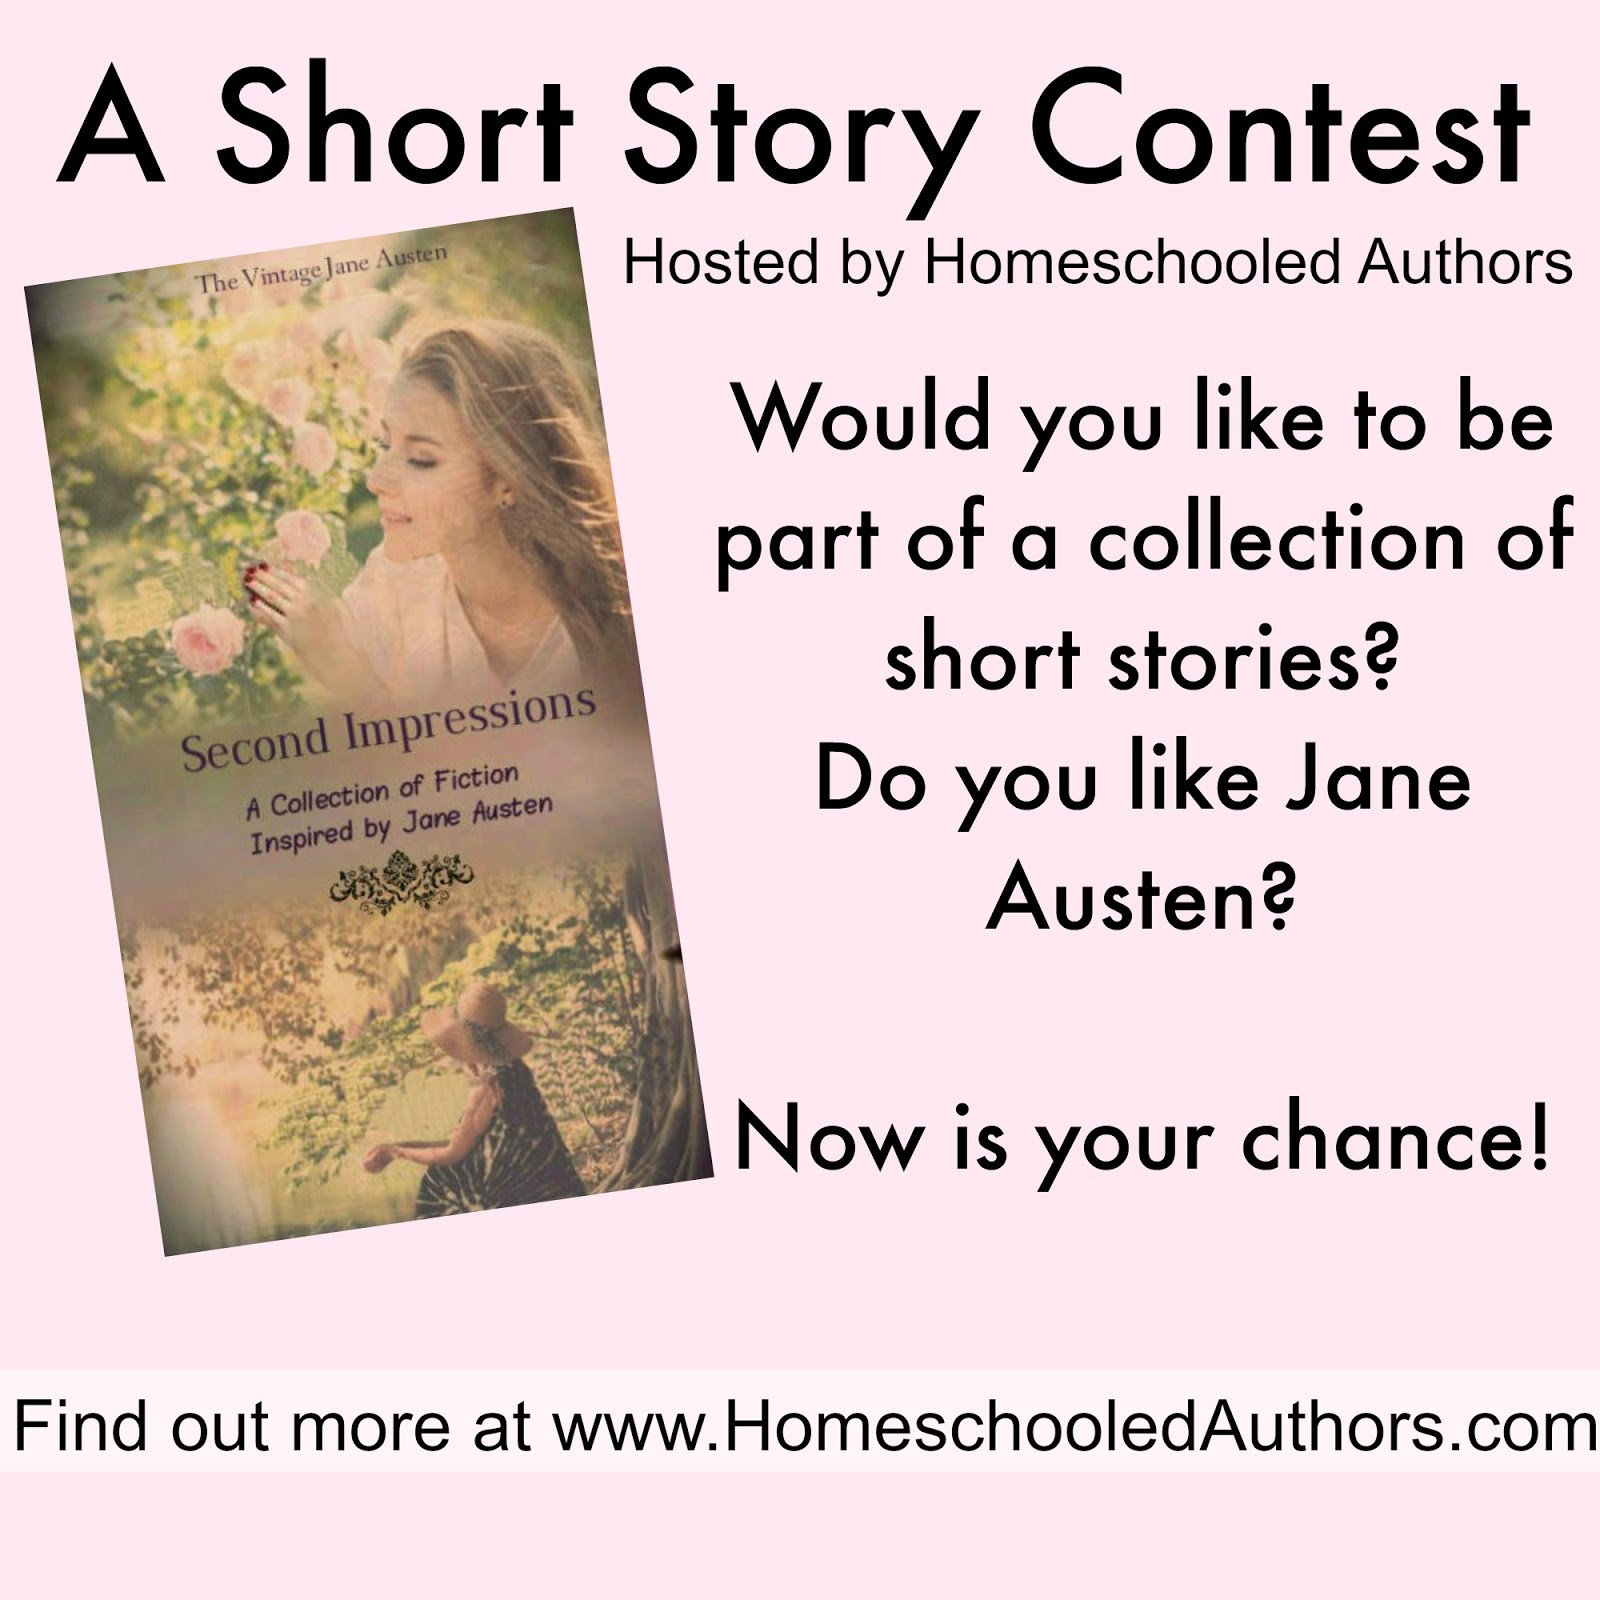 Our short story contest